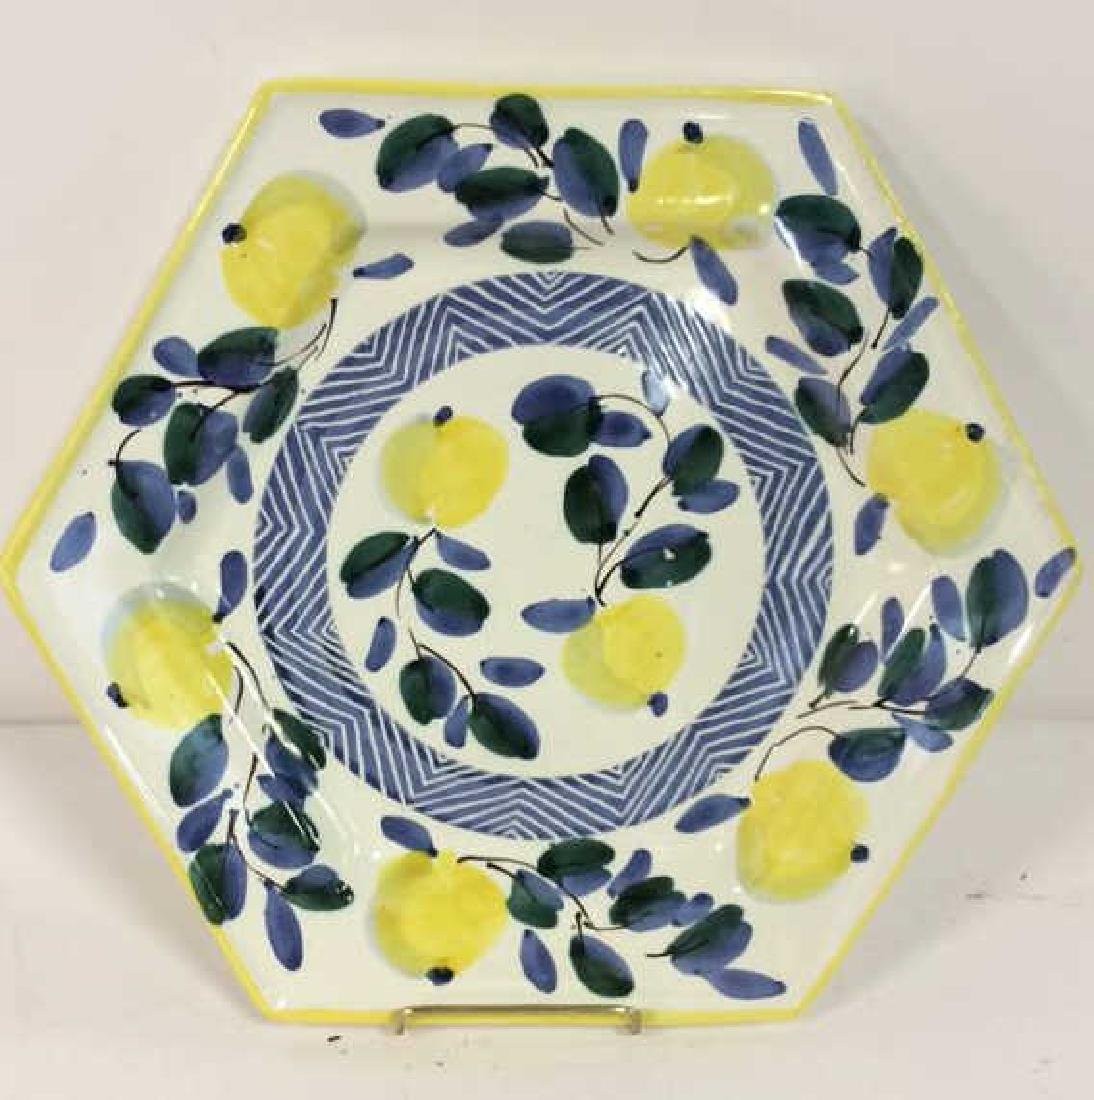 Set 4 RAMPINI RADDA Signed Ceramic Plates - 9